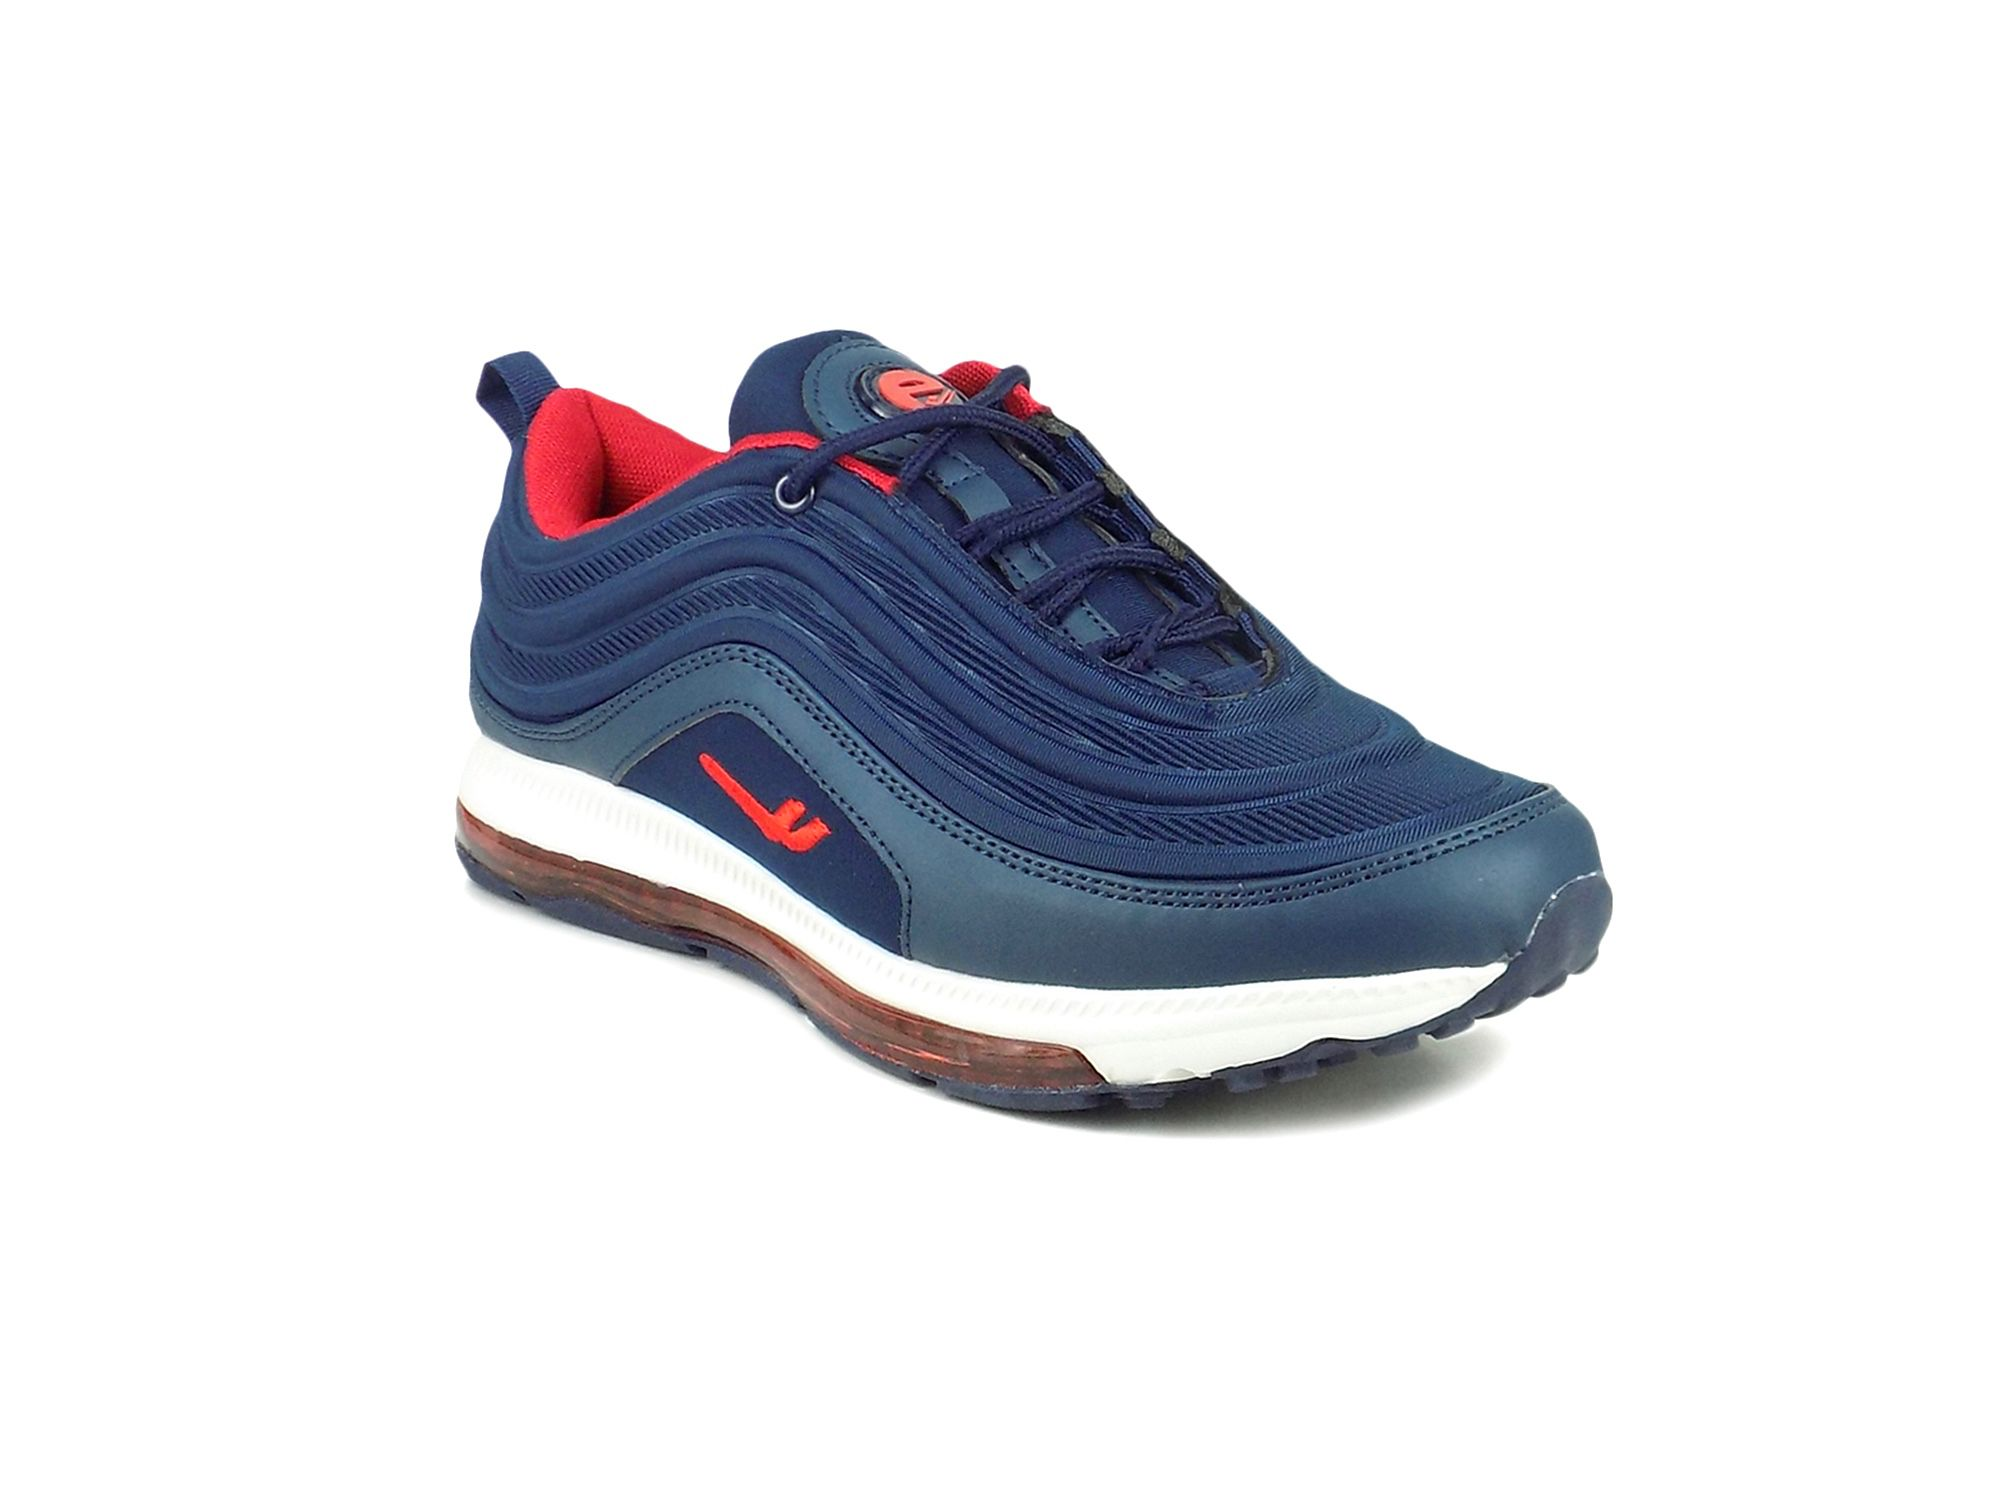 Ripley Oxypair Pro Series Blue Running